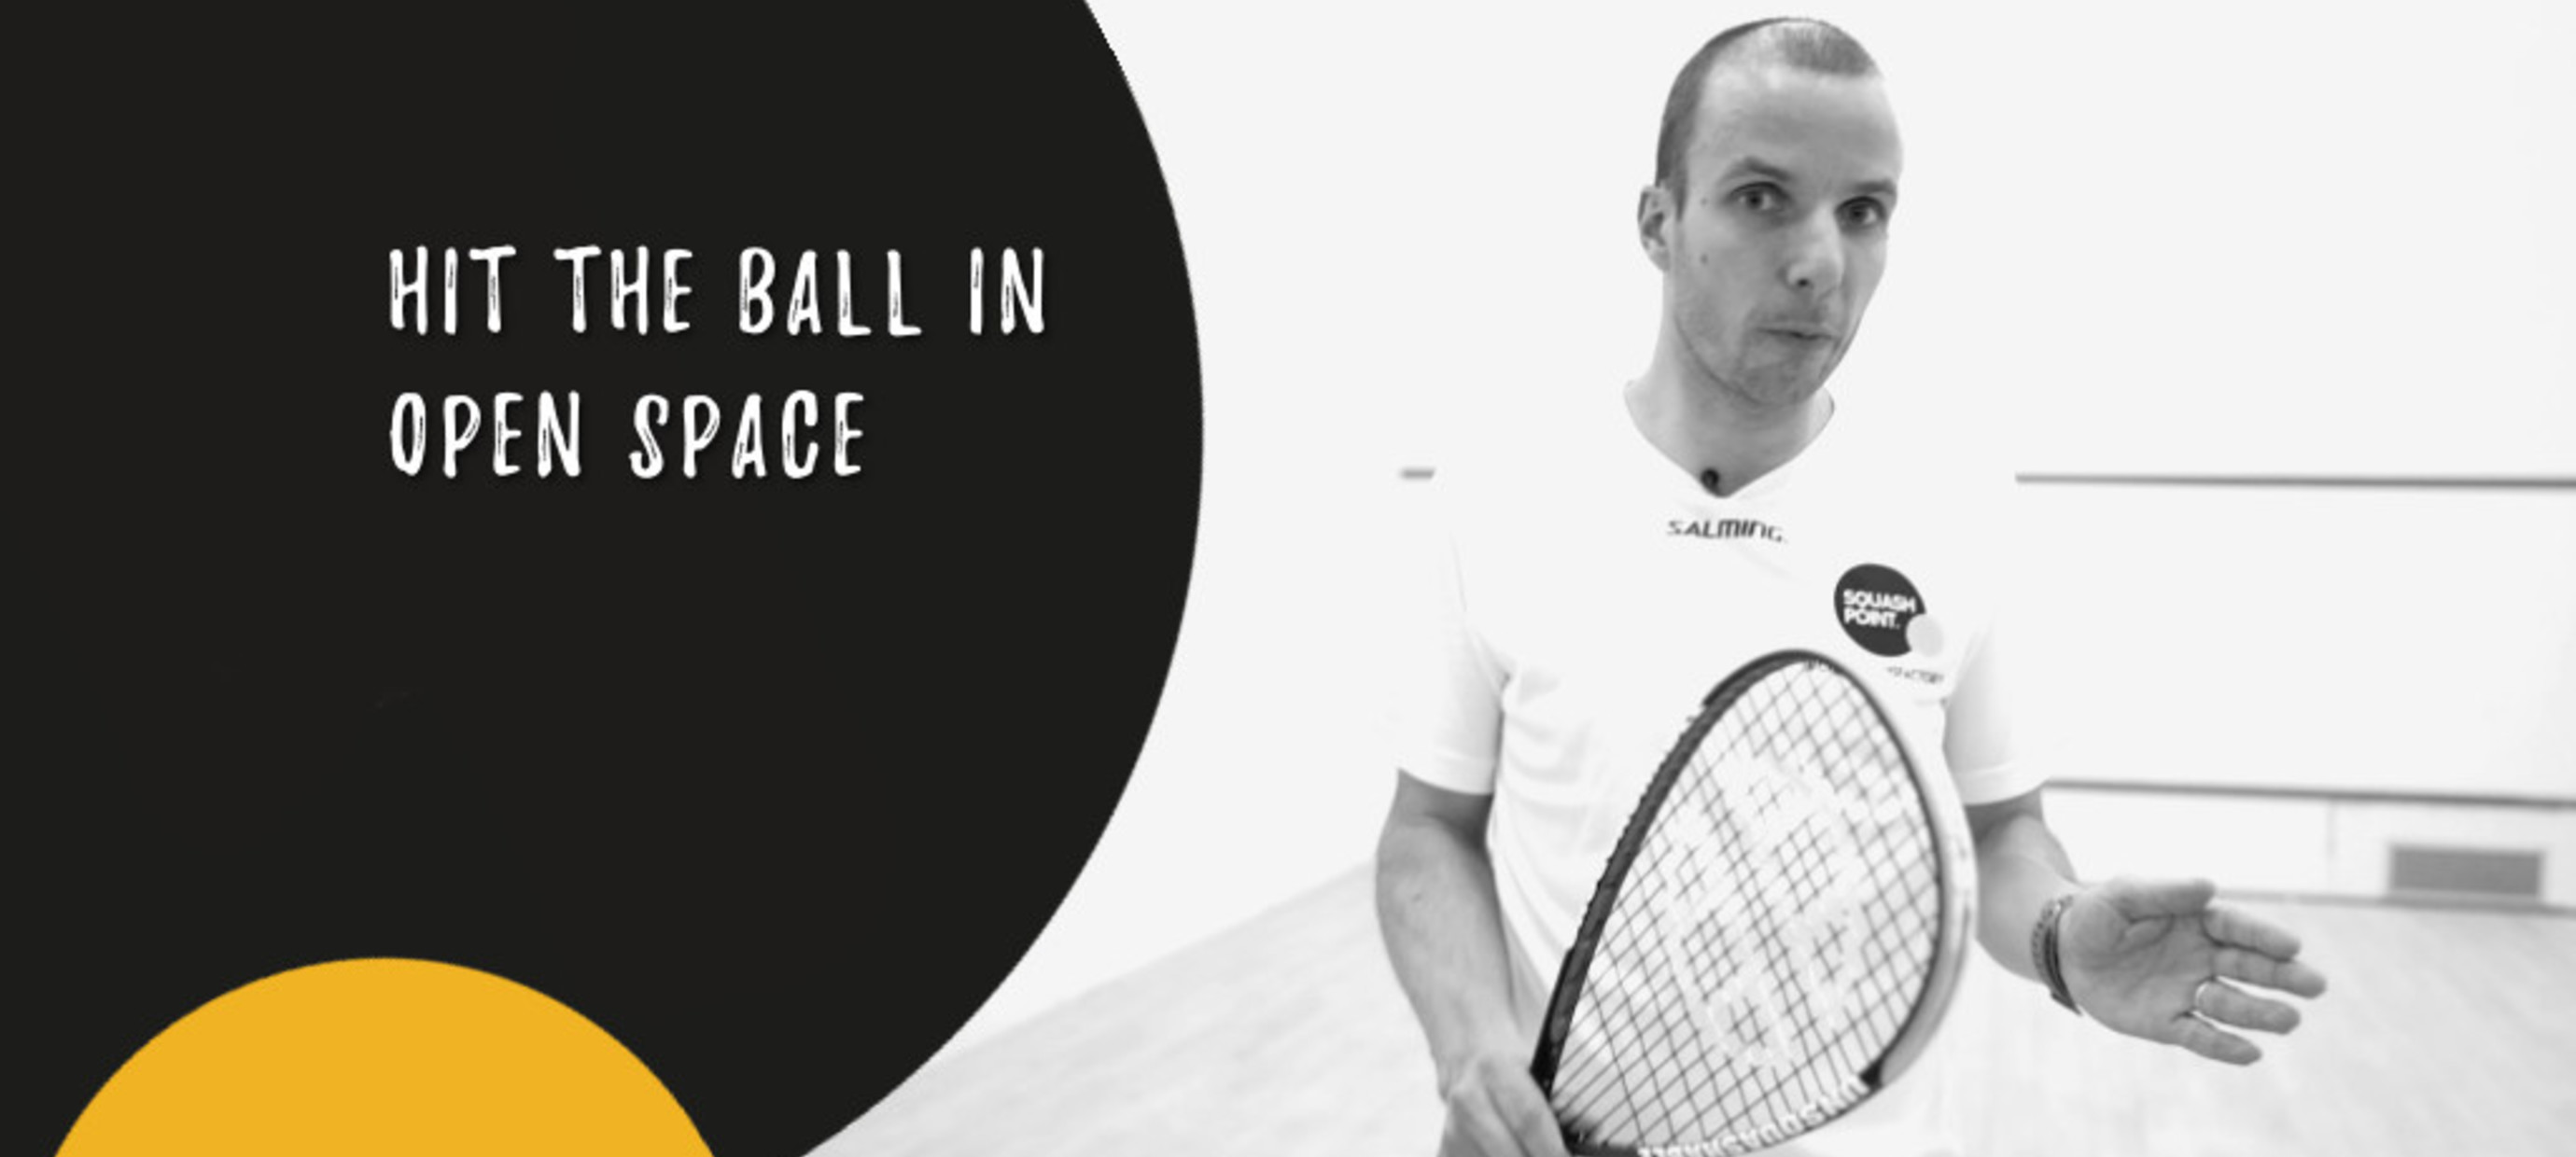 Hit the ball in open space